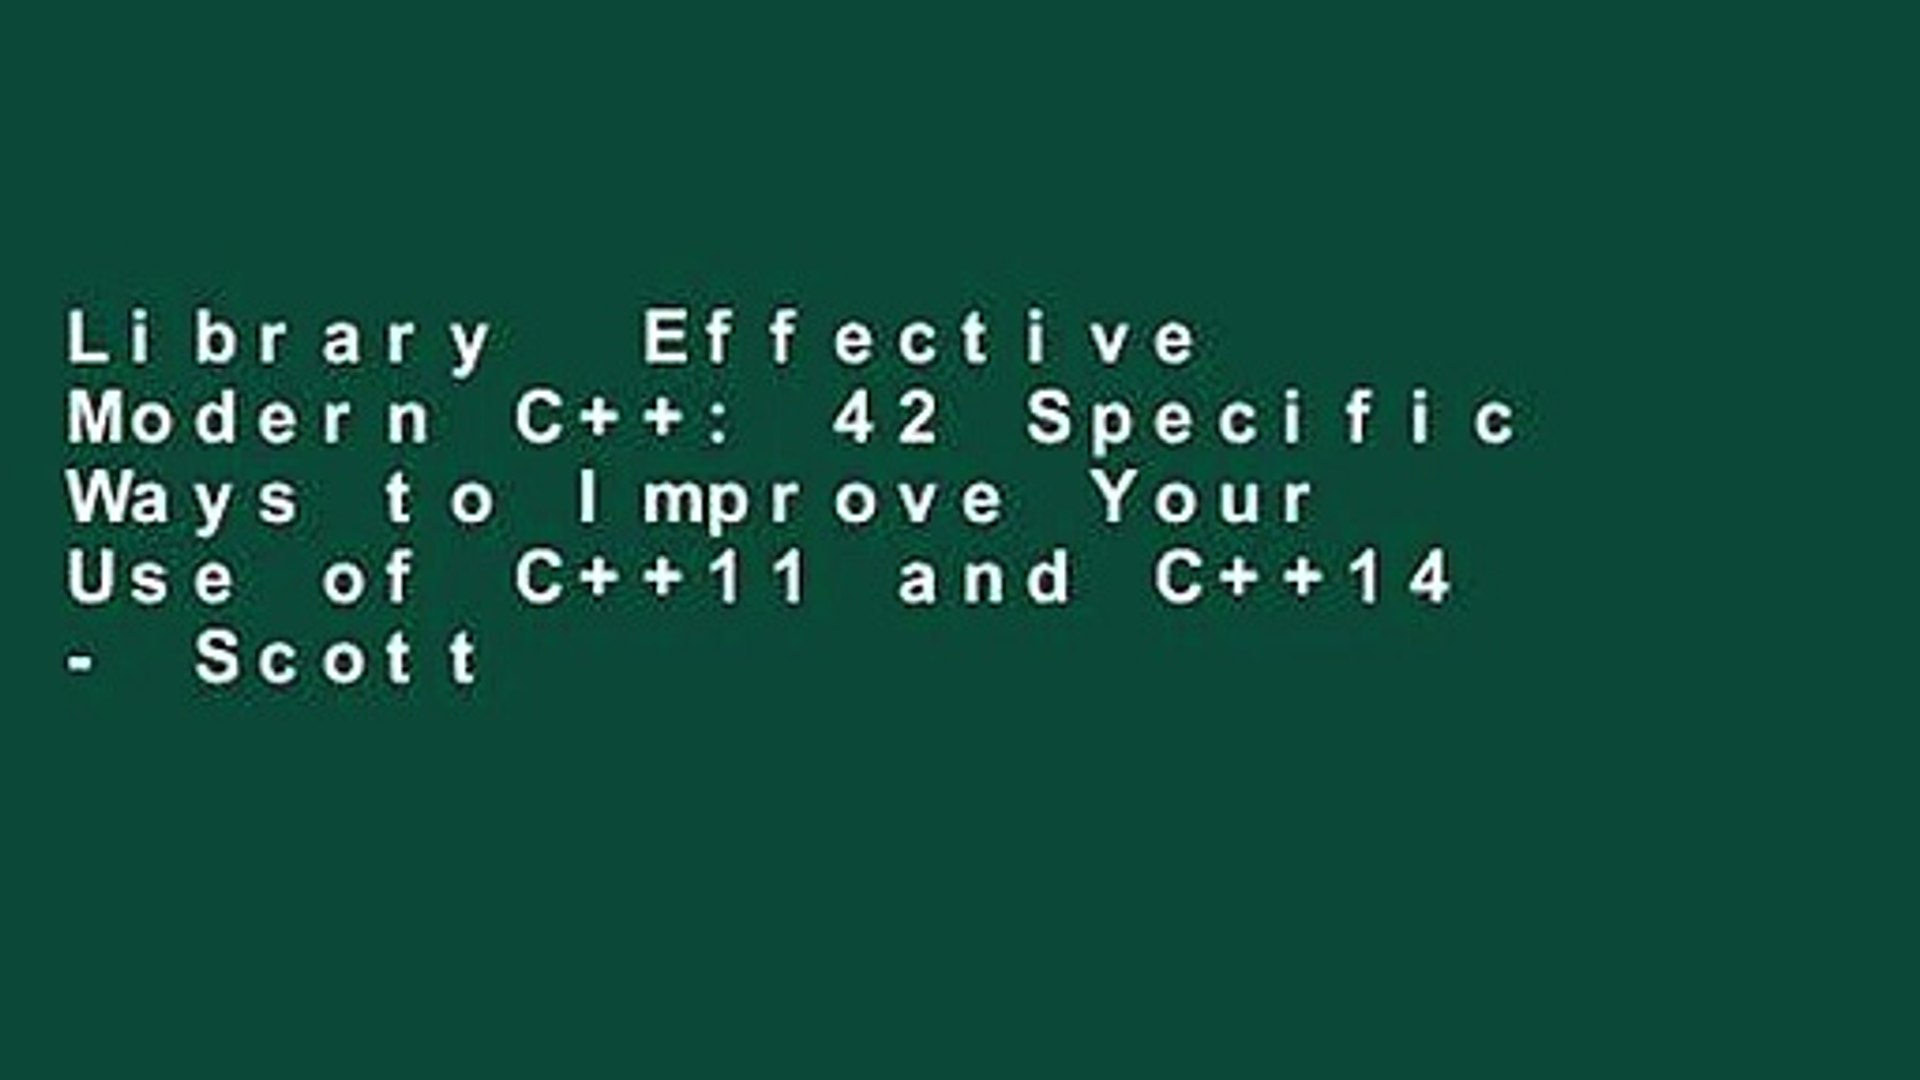 Library  Effective Modern C++: 42 Specific Ways to Improve Your Use of C++11 and C++14 - Scott